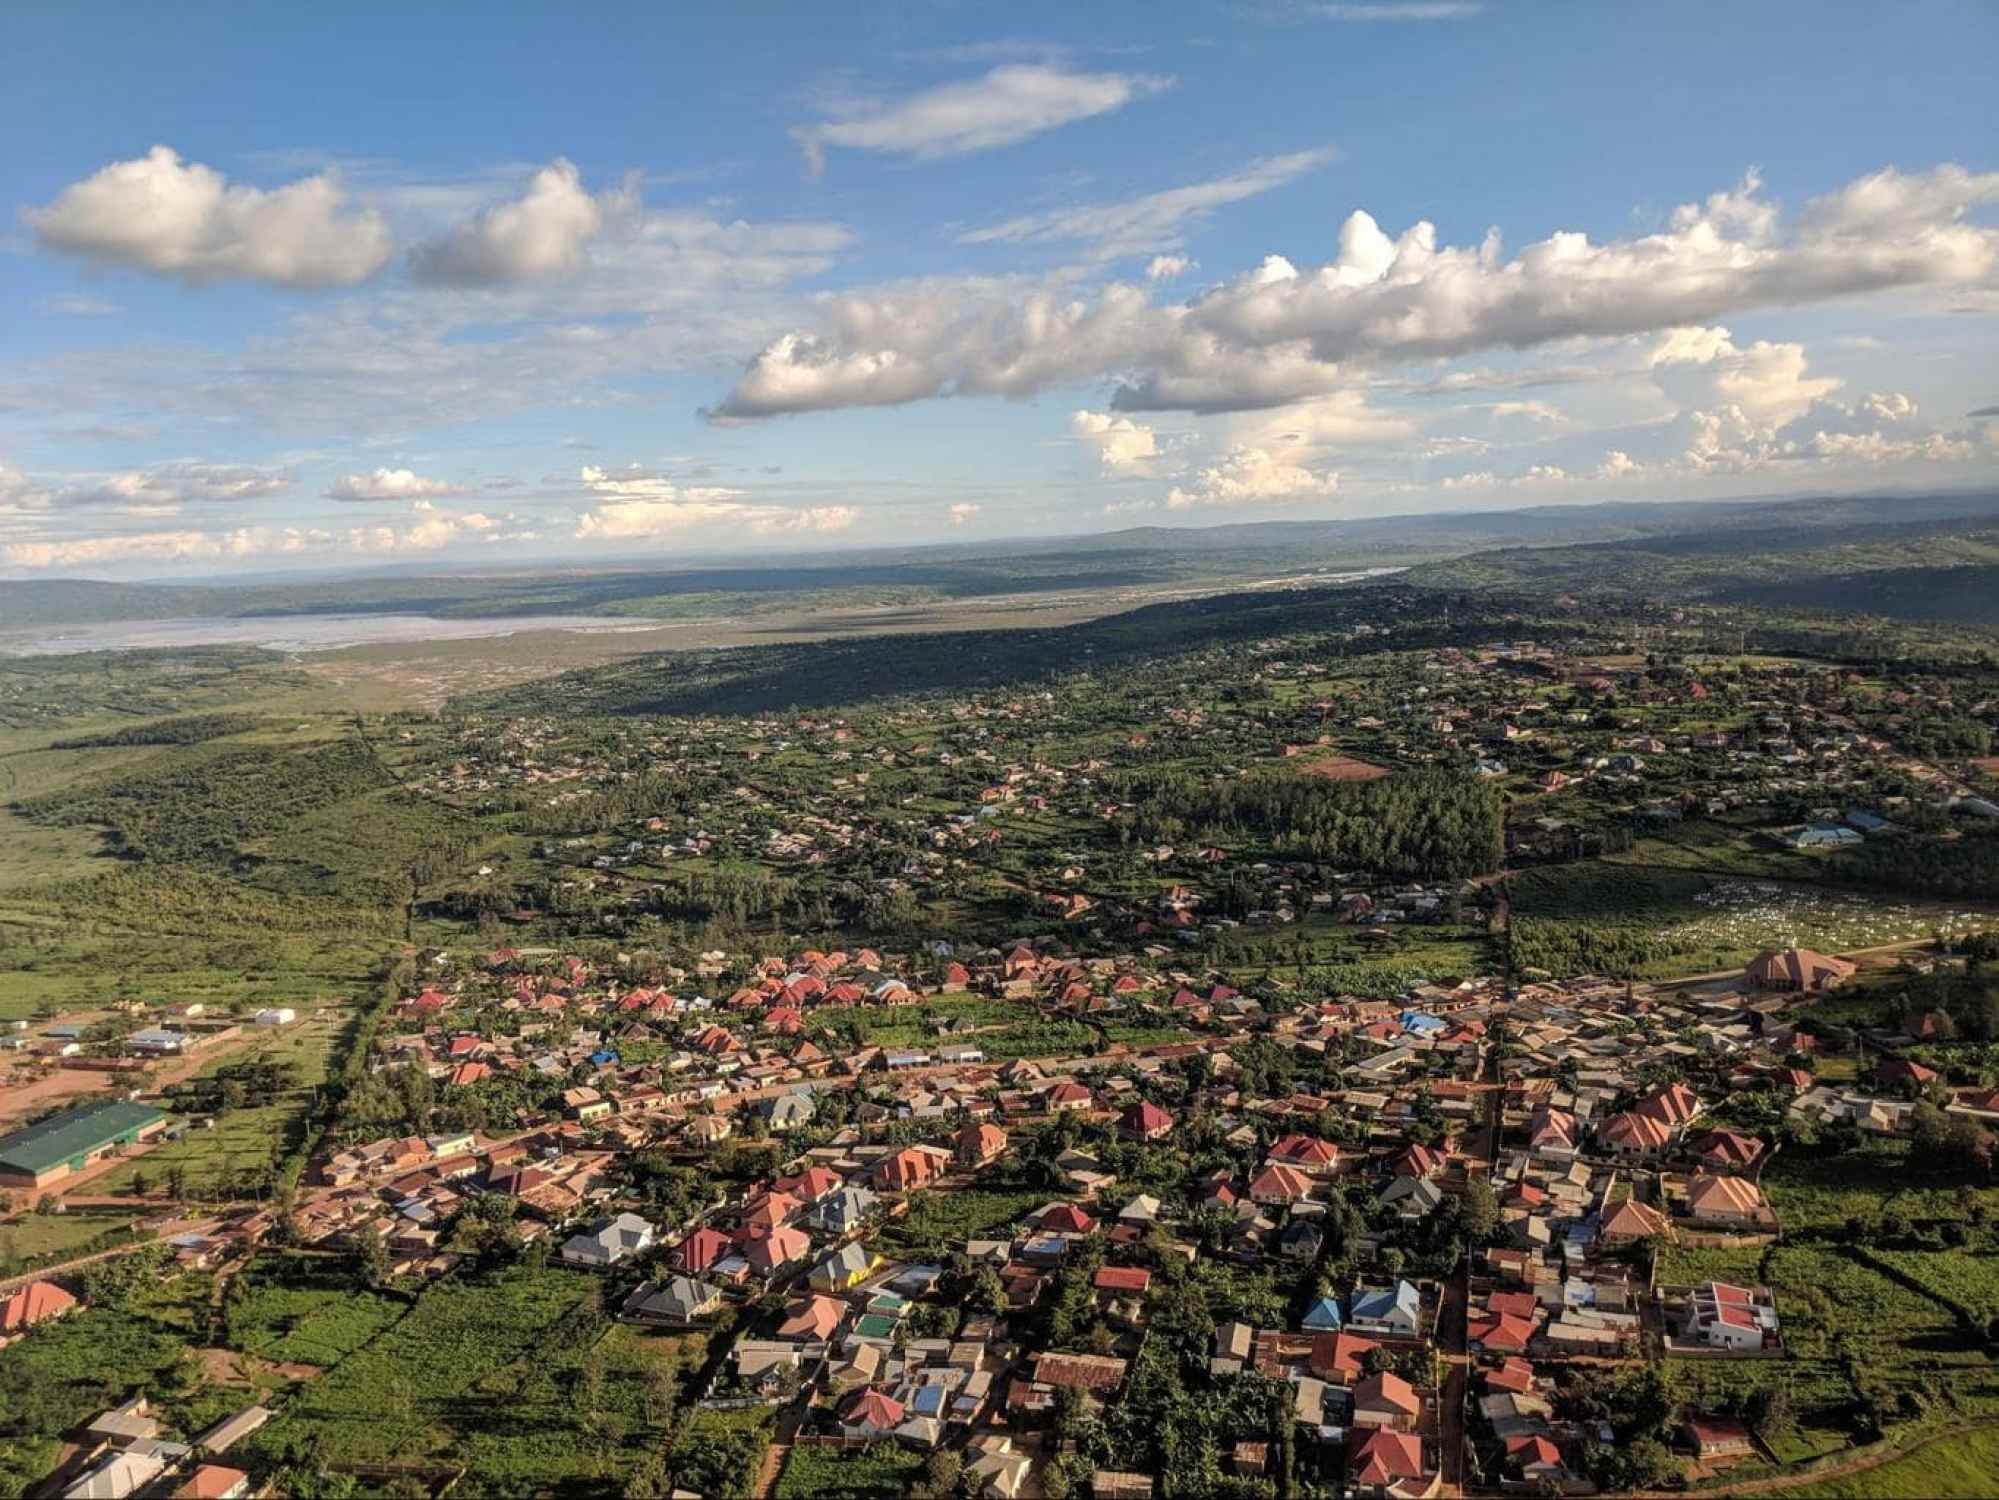 Rwanda from above on the approach to landing in Kigali